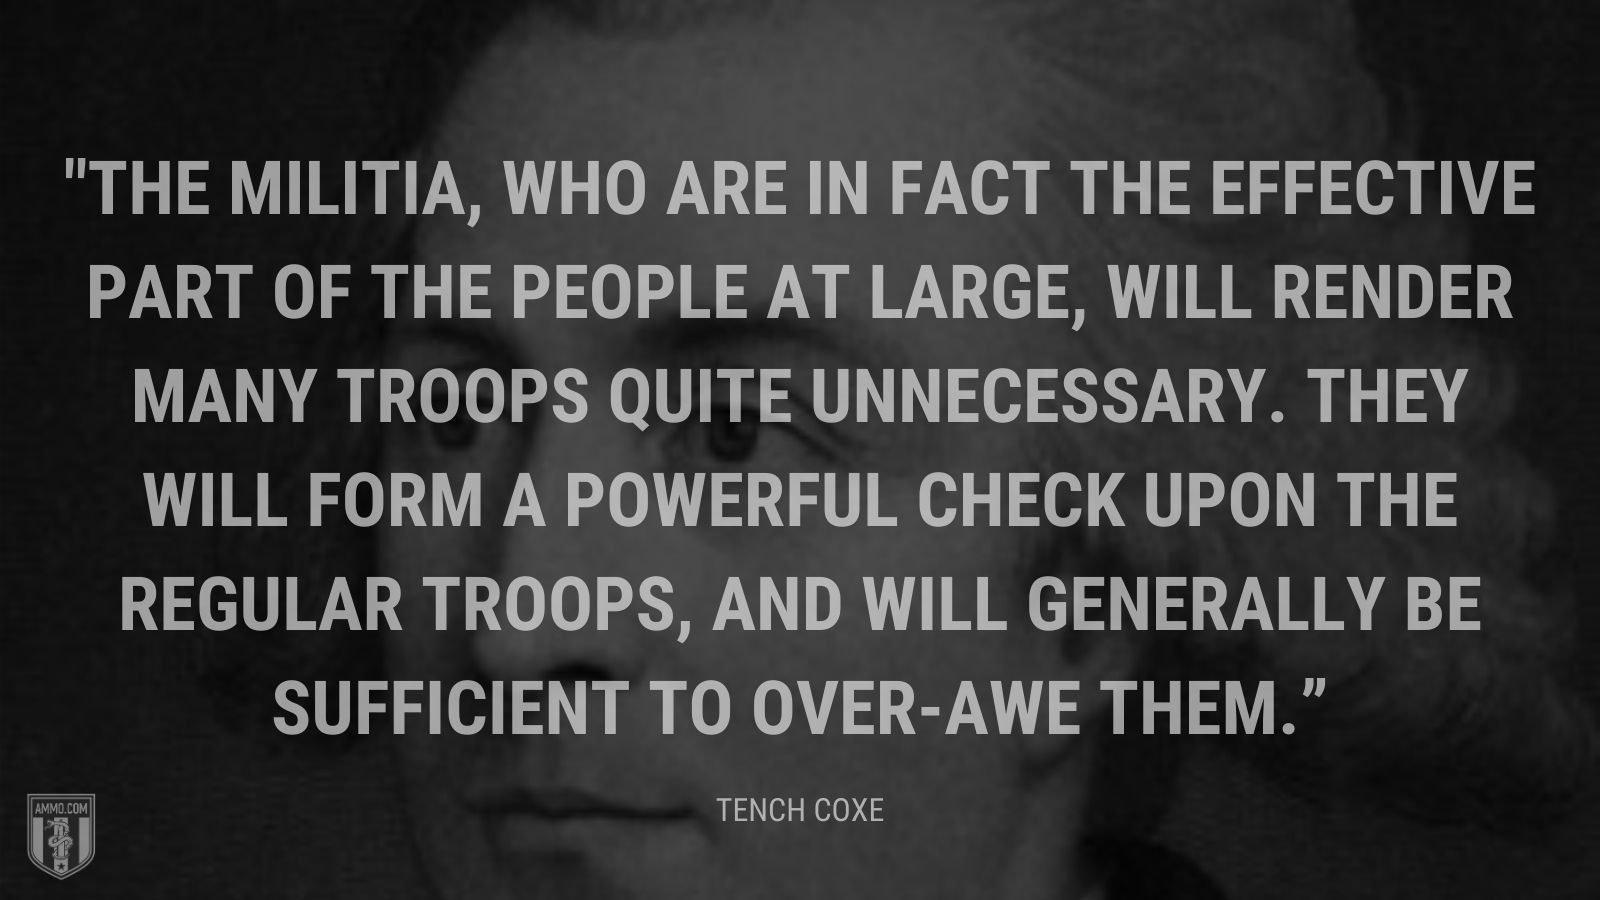 """The militia, who are in fact the effective part of the people at large, will render many troops quite unnecessary. They will form a powerful check upon the regular troops, and will generally be sufficient to over-awe them."" - Tench Coxe"